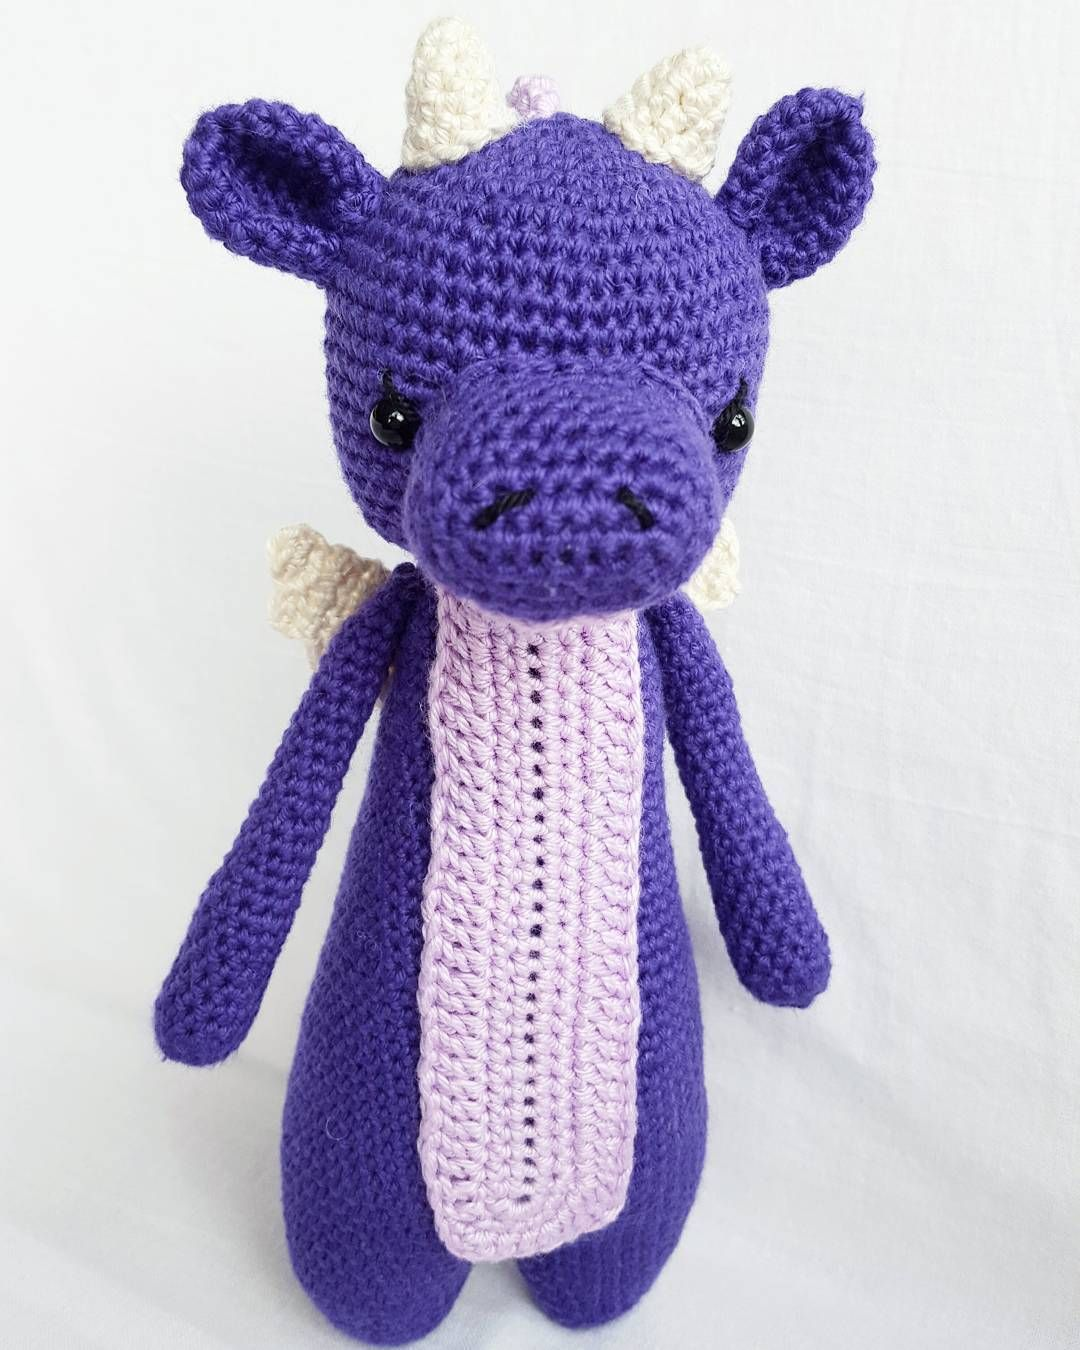 Dragon by jacq.haakt. Crochet pattern by Little Bear Crochets: www.littlebearcrochets.com ❤️ #littlebearcrochets #amigurumi